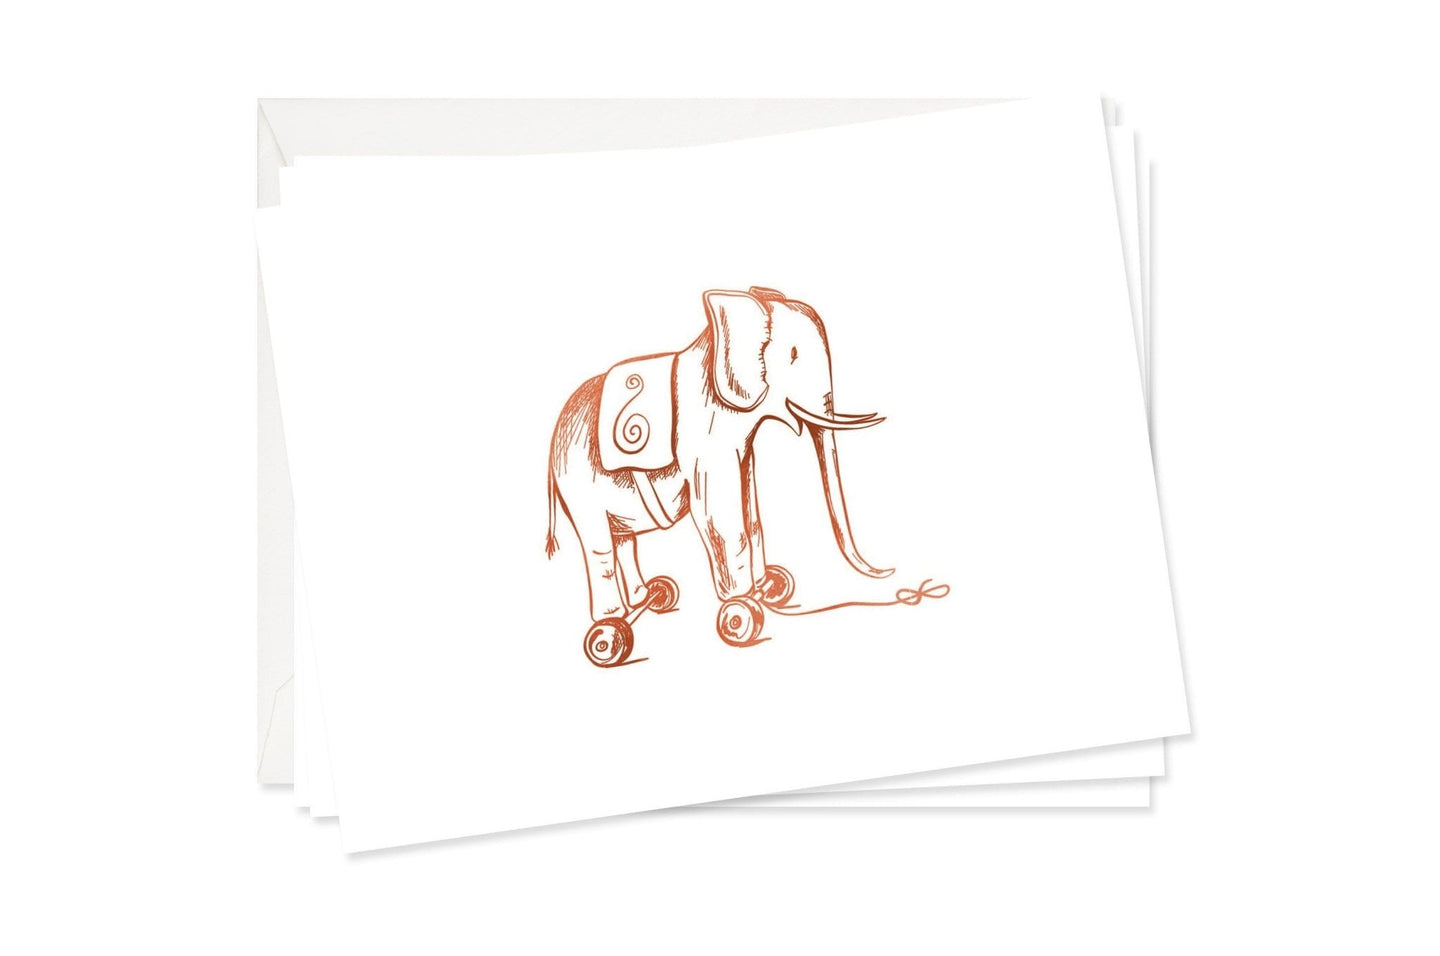 Toy Elephant Stationery Set / Neighborhood Goods